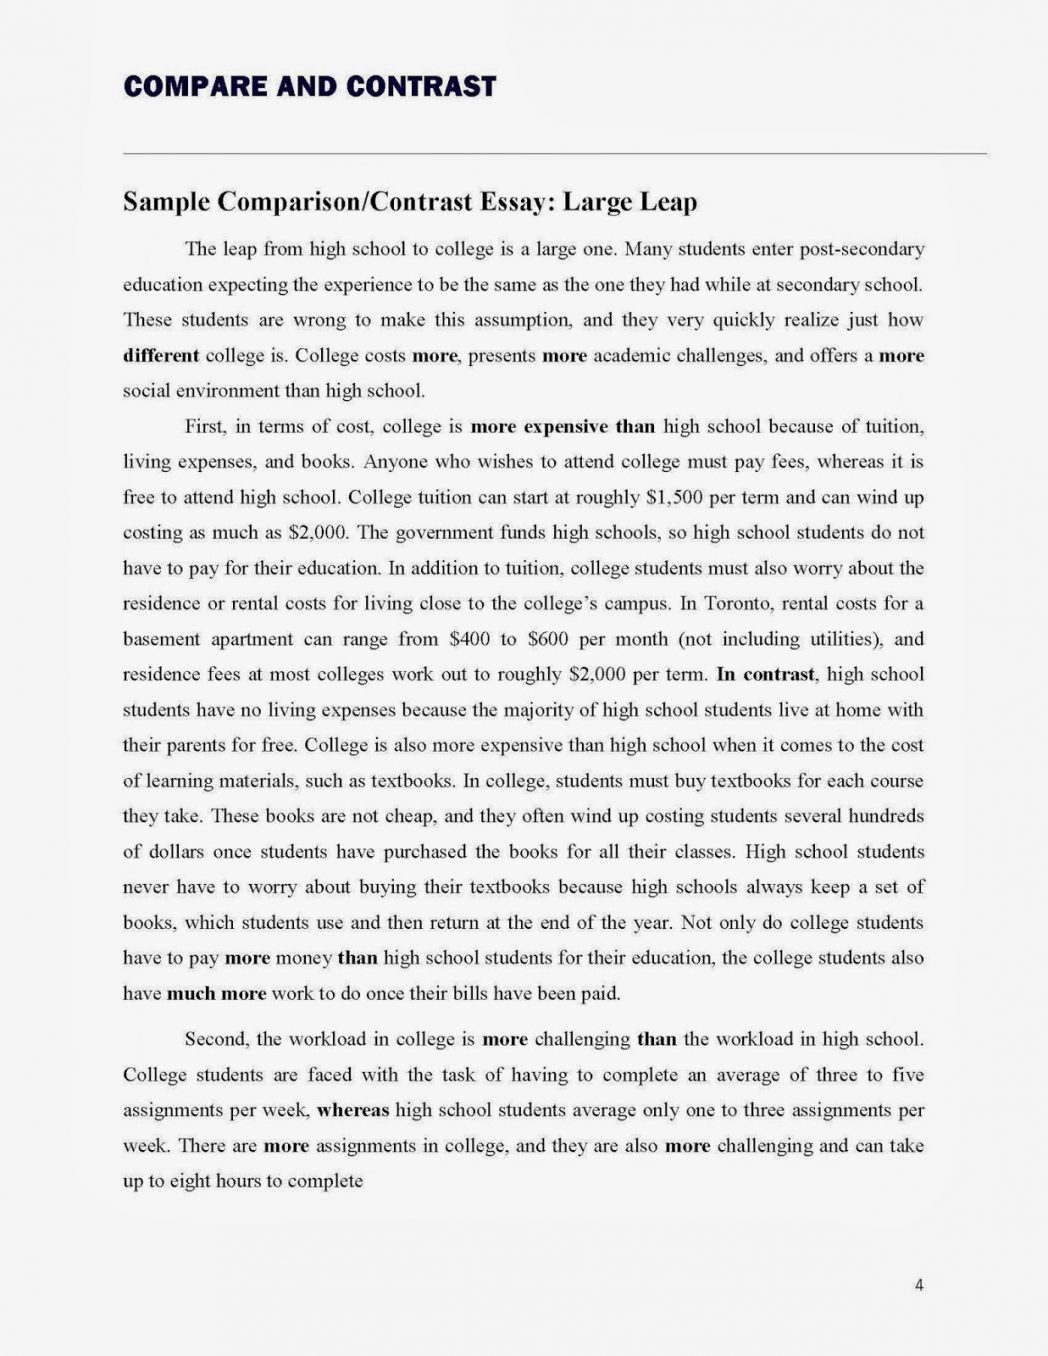 016 Essay Example How To Write Compare And Contrast On High School College Level Topics Structure Format Transitions Prompts Outline Introduction Template Examples Striking A Good Essays Full